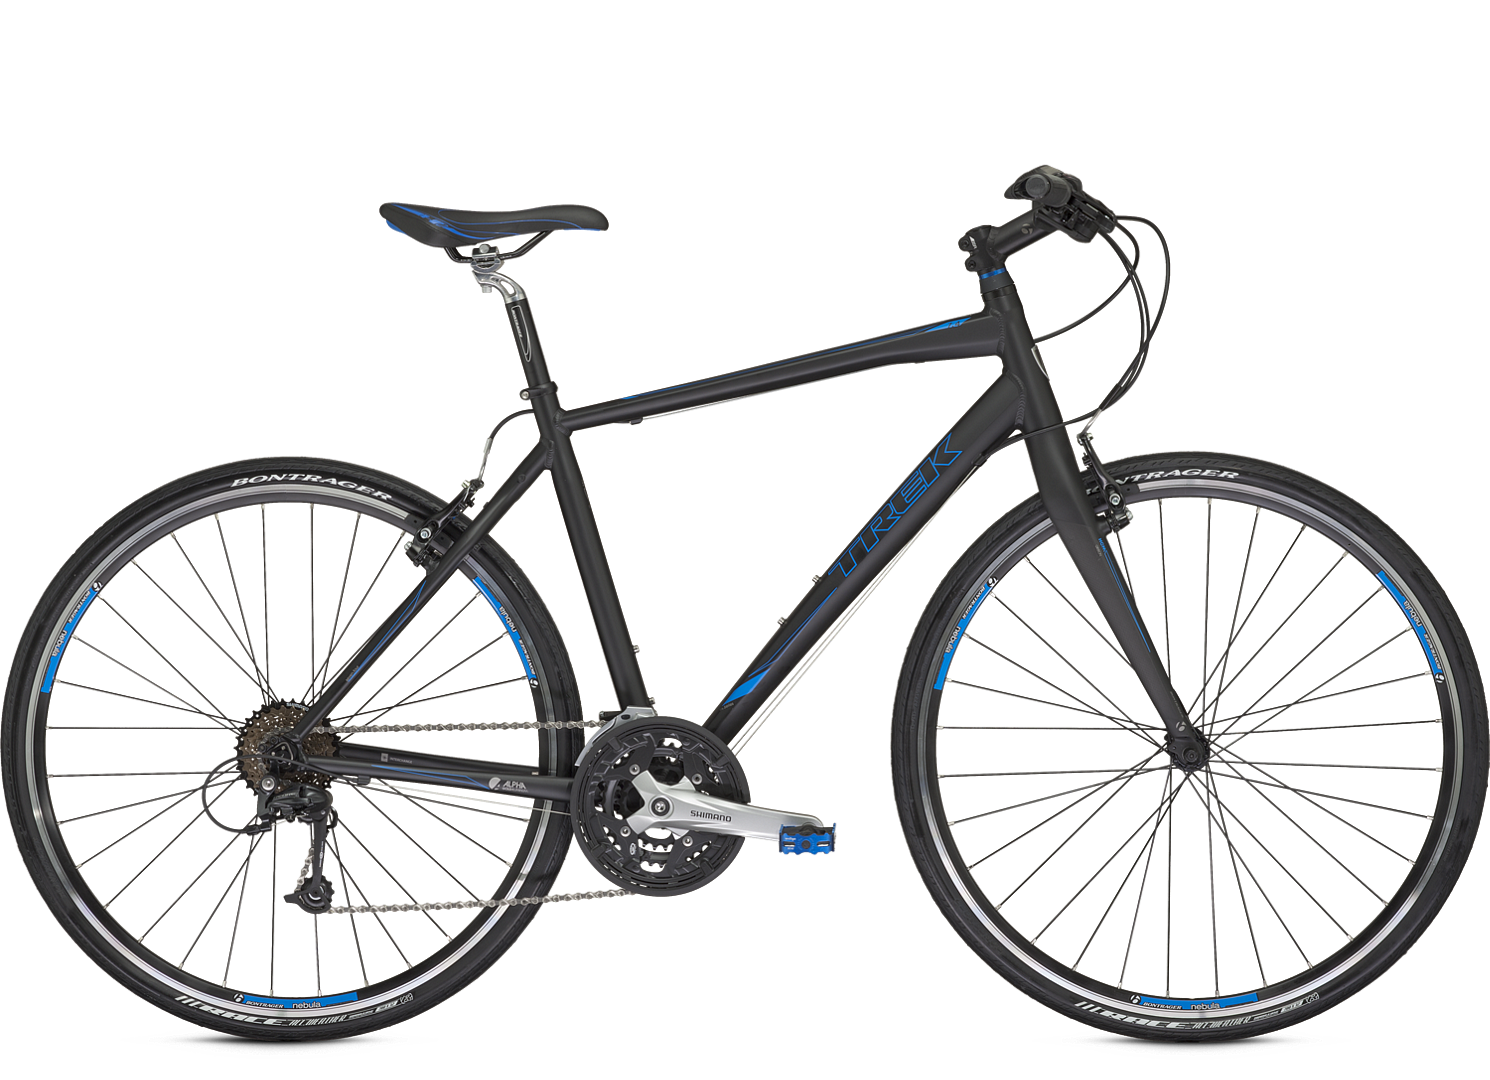 Bicycle png image purepng. Cycle clipart pedal bike